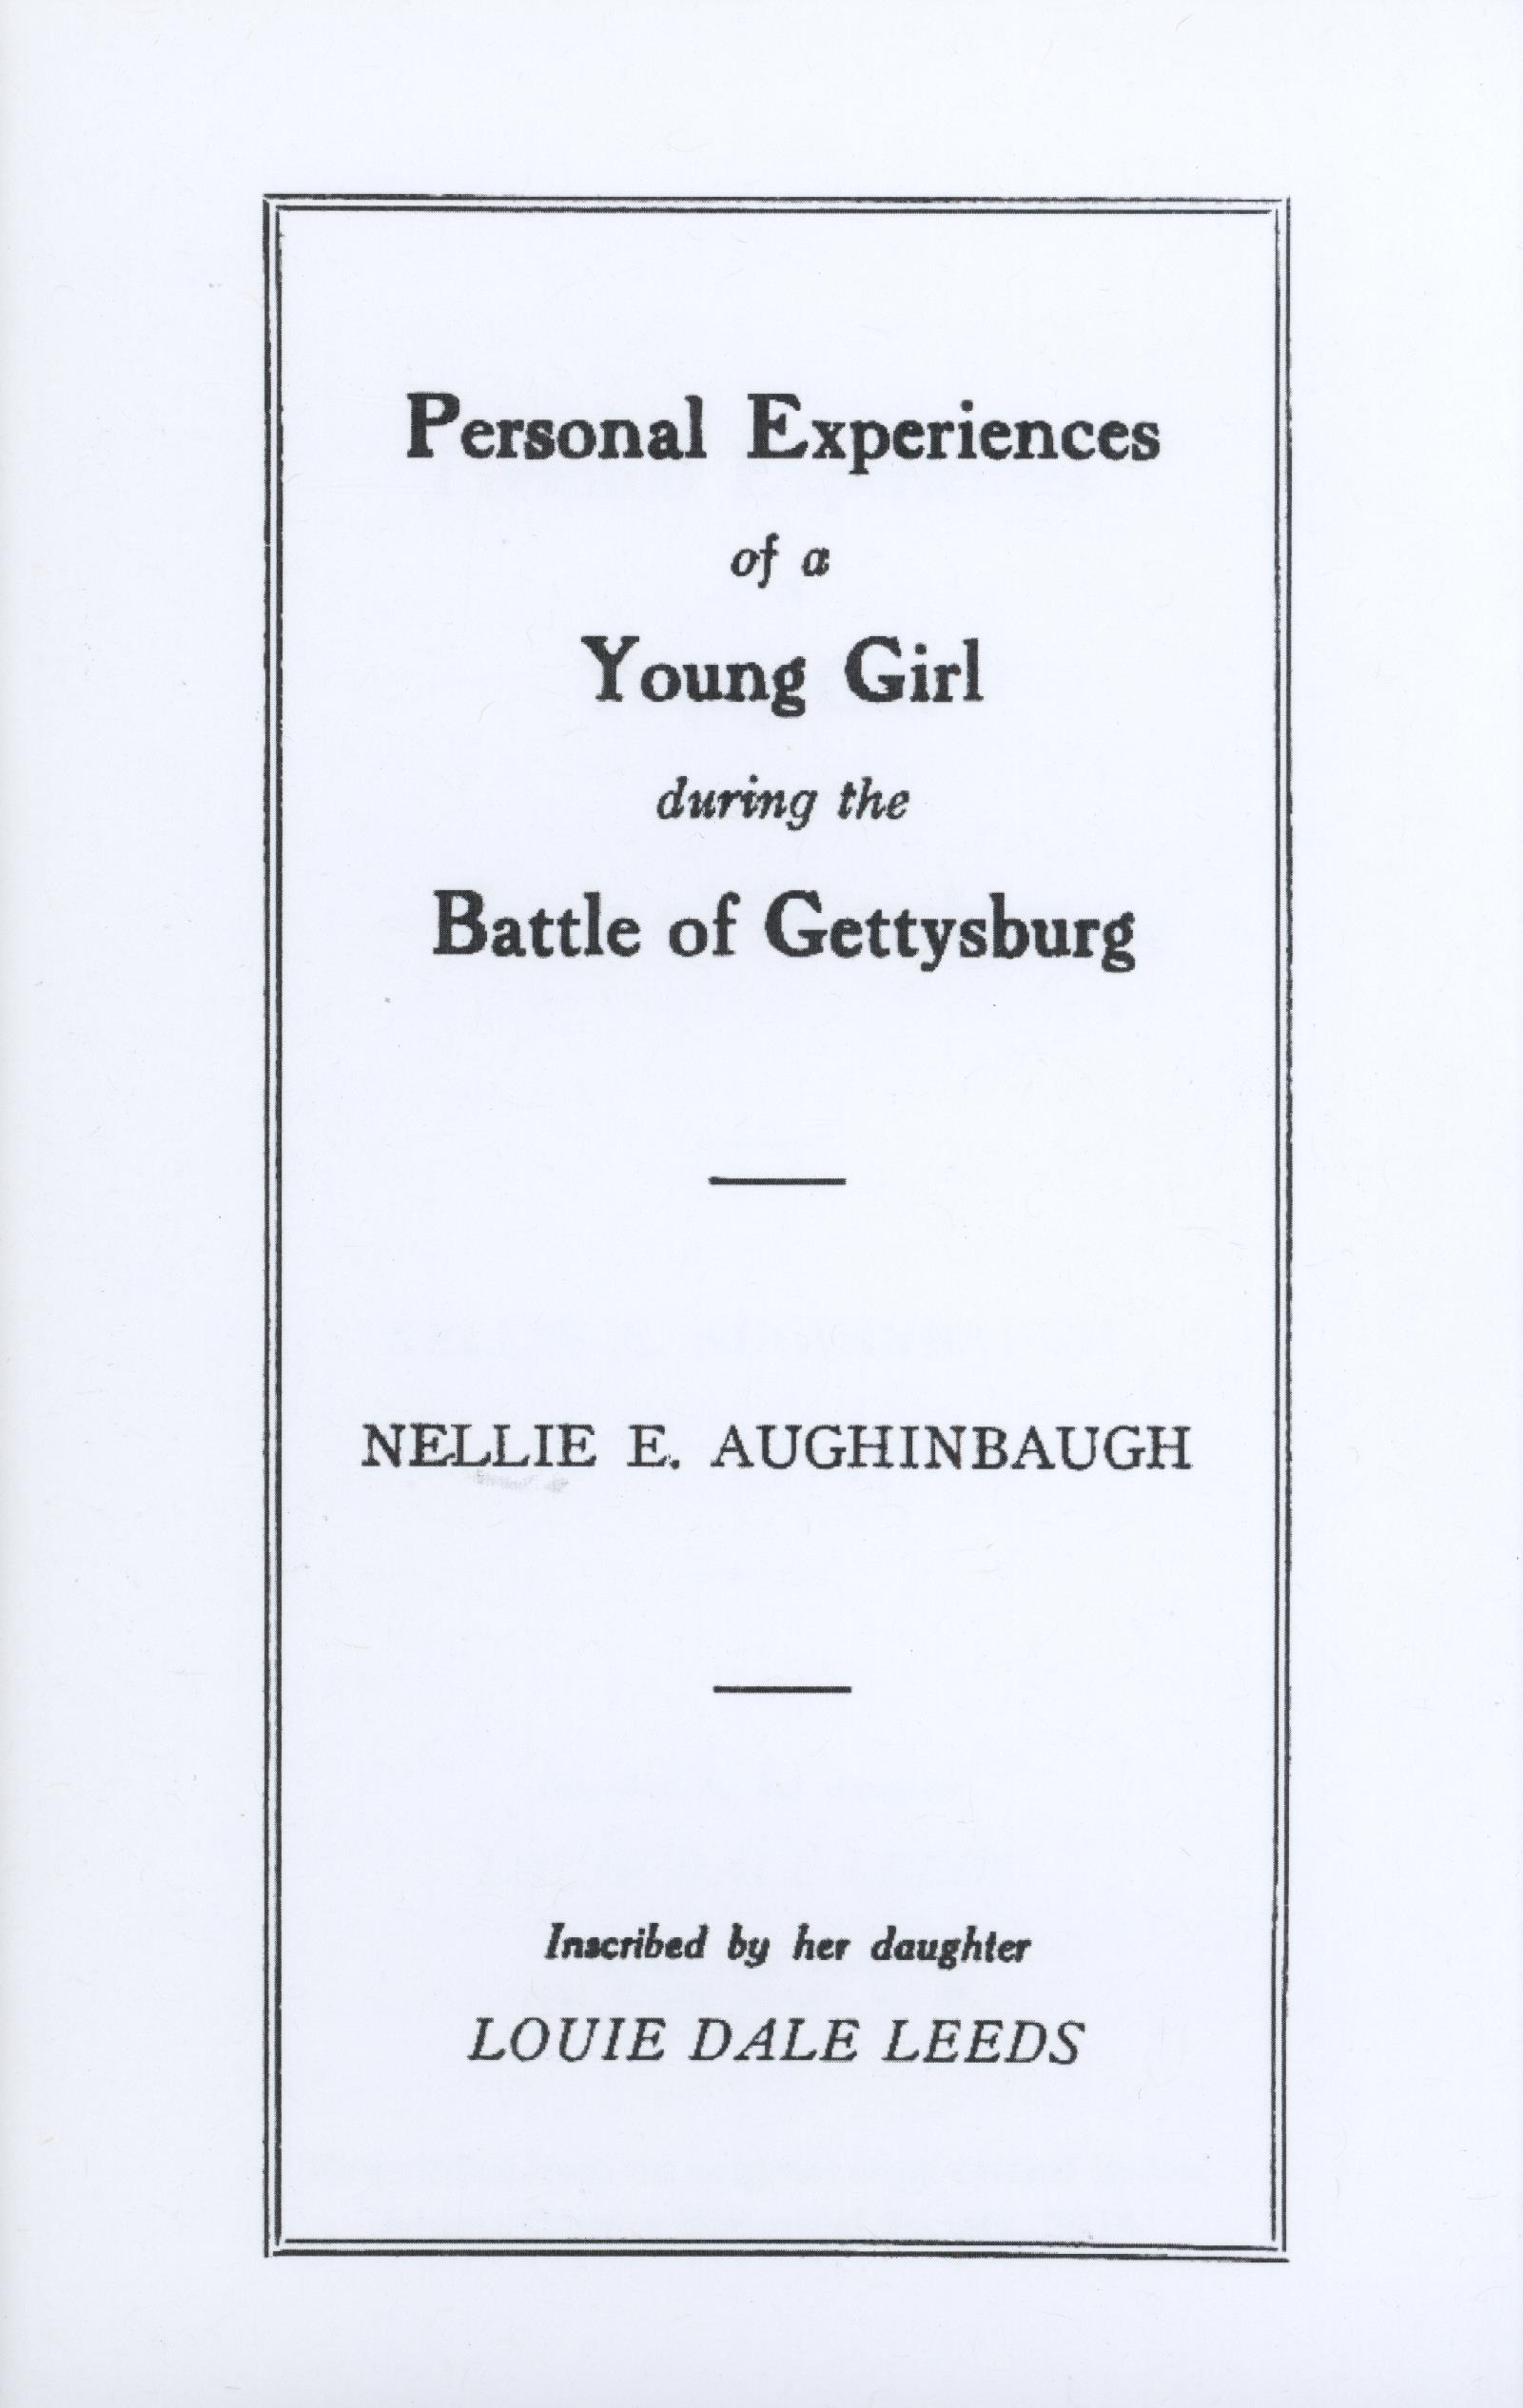 Personal Experiences of a Young Girl During the Battle of Gettysburg